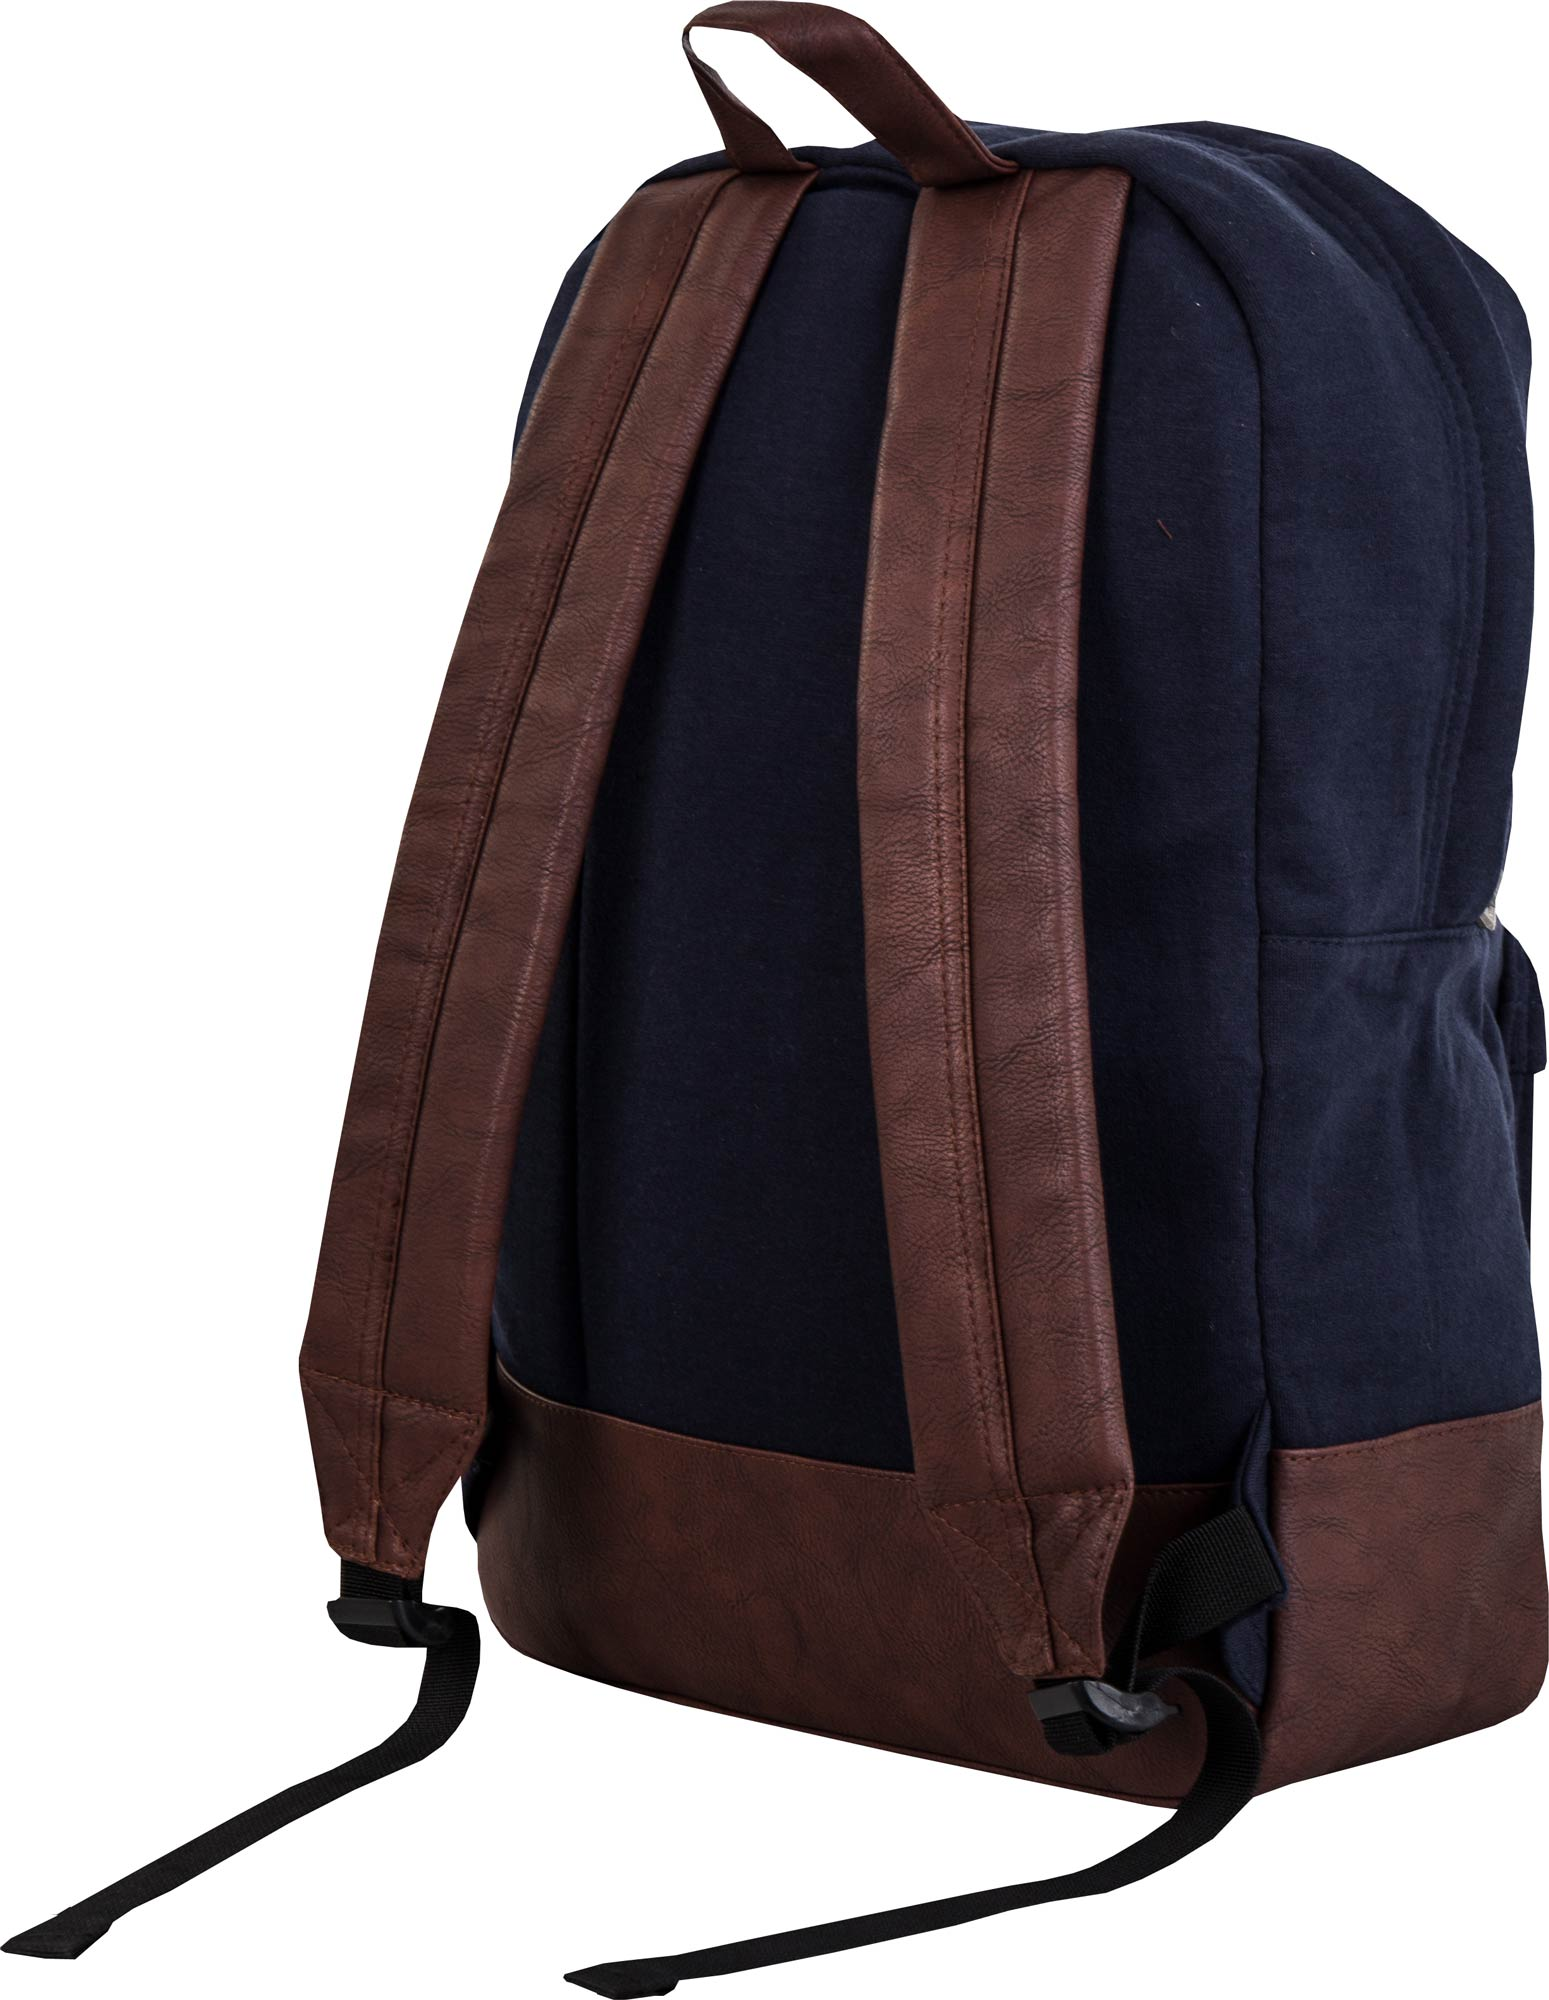 Russell Athletic BACK-PACK  cf8abb08fa